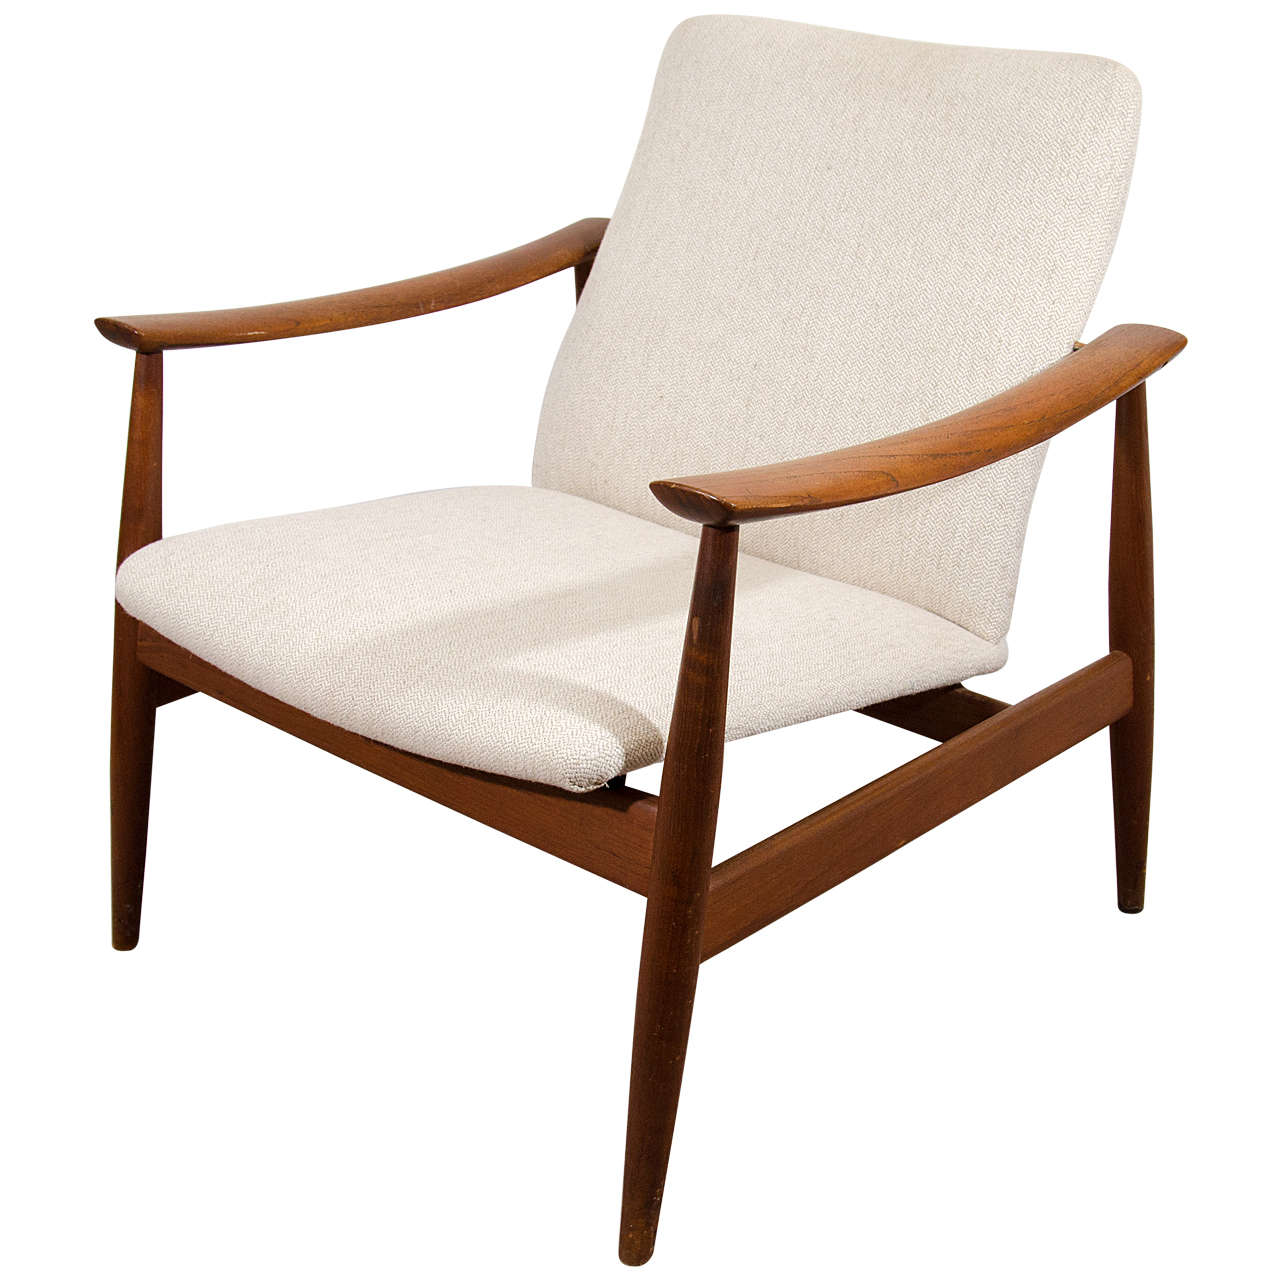 Image of: Model of Mid Century Lounge Chair